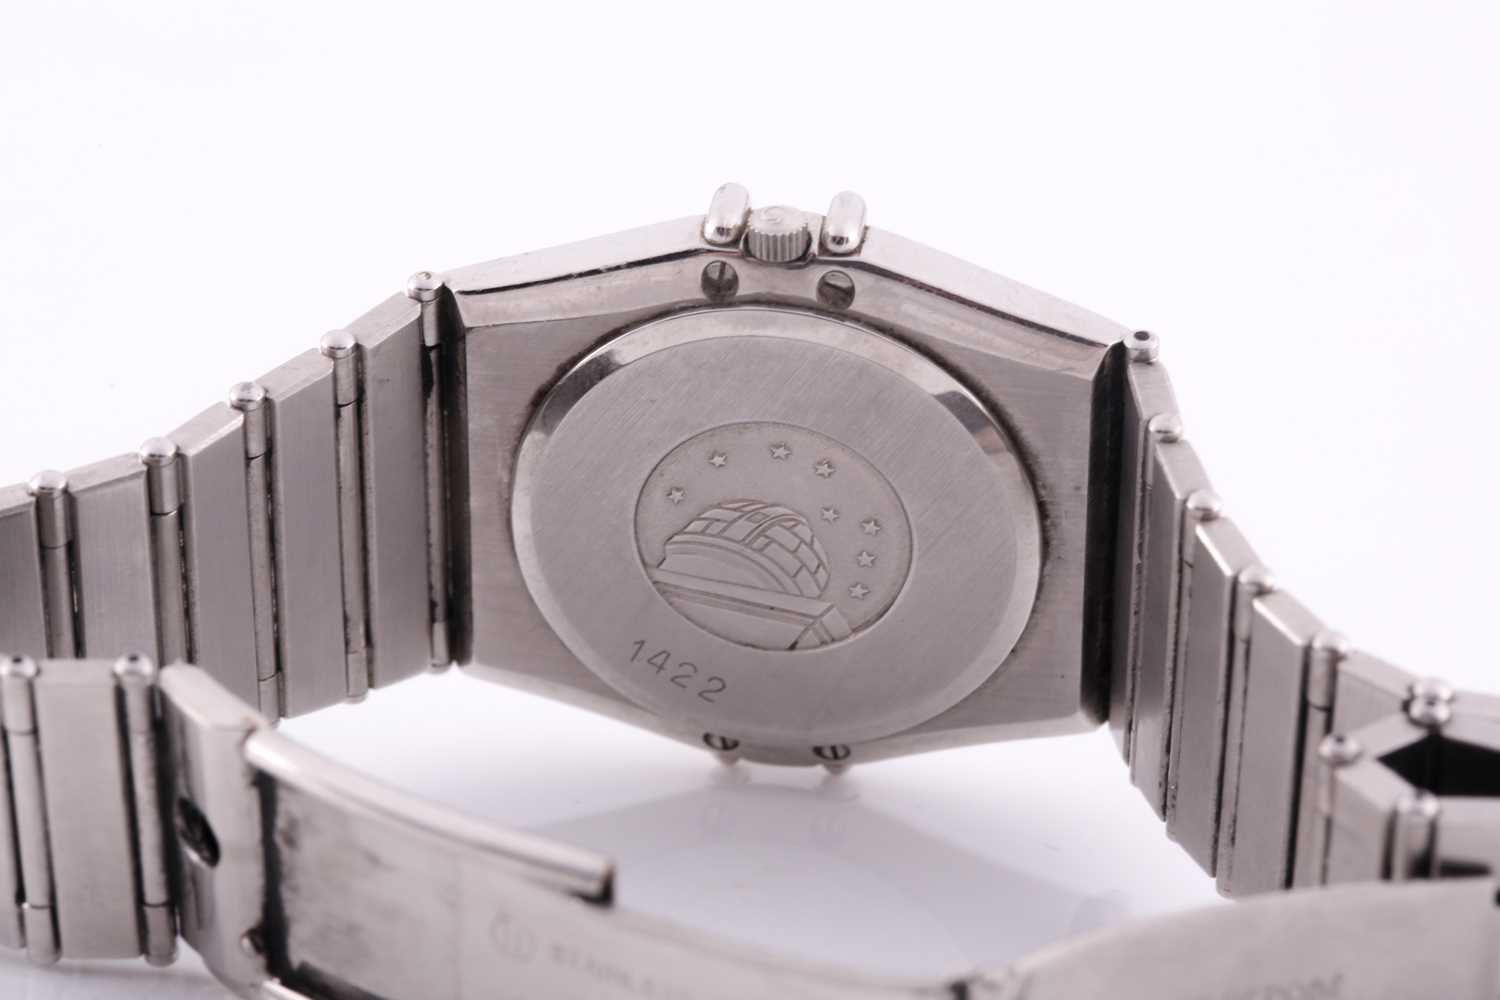 An Omega Constellation chronometer quartz wristwatch, with date aperture and Roman numeral dial, - Image 2 of 5